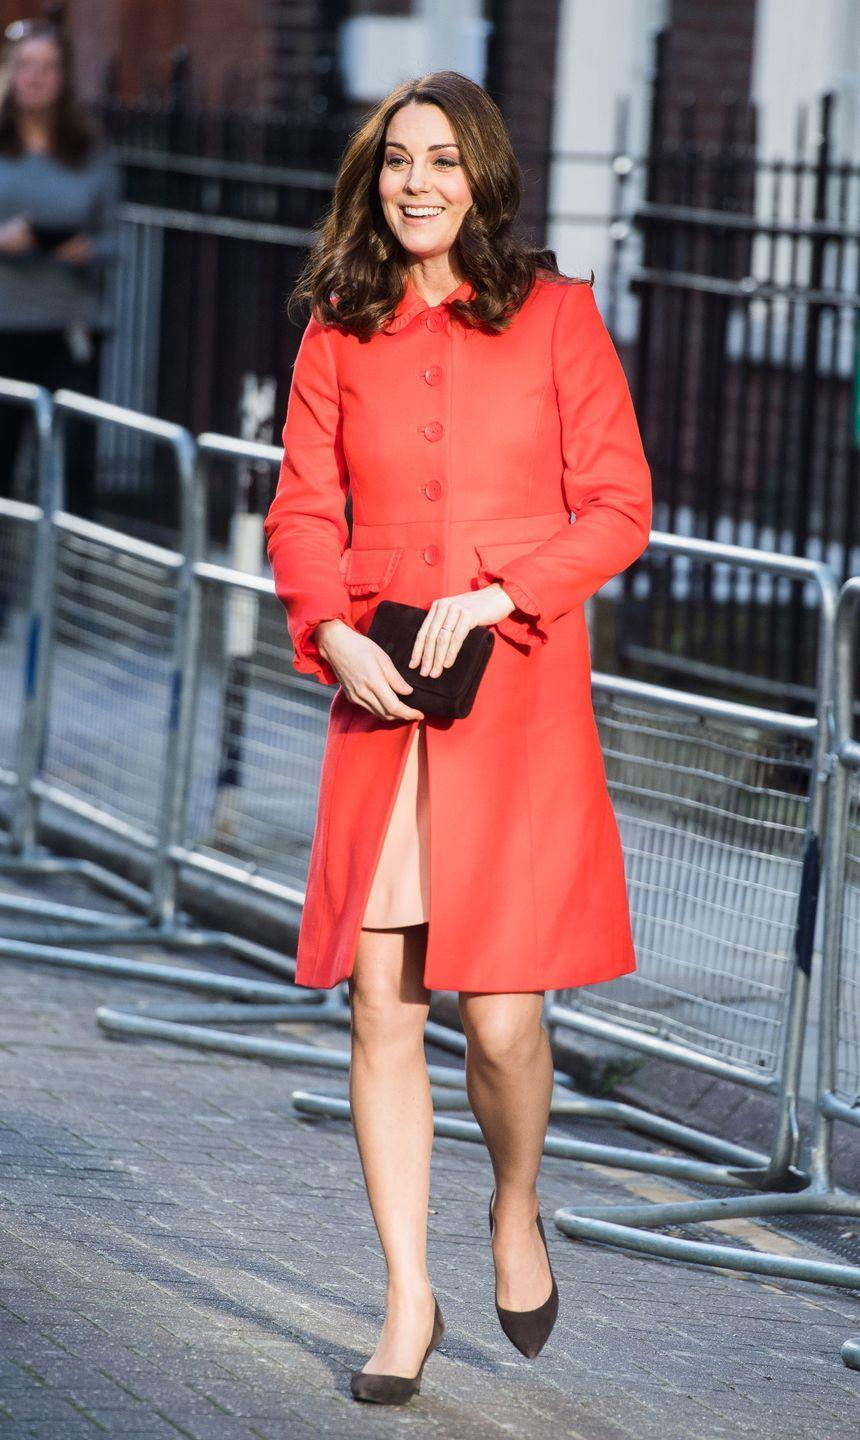 """<p>In a red ruffled coat by Boden (her <a href=""""http://www.telegraph.co.uk/fashion/people/duchess-cambridge-wears-boden-first-time-else-should-buy-british/"""" rel=""""nofollow noopener"""" target=""""_blank"""" data-ylk=""""slk:first time"""" class=""""link rapid-noclick-resp"""">first time</a> wearing the British brand), a tan dress, a black clutch, and black pumps while visiting Great Ormond Street Hospital in London.</p>"""